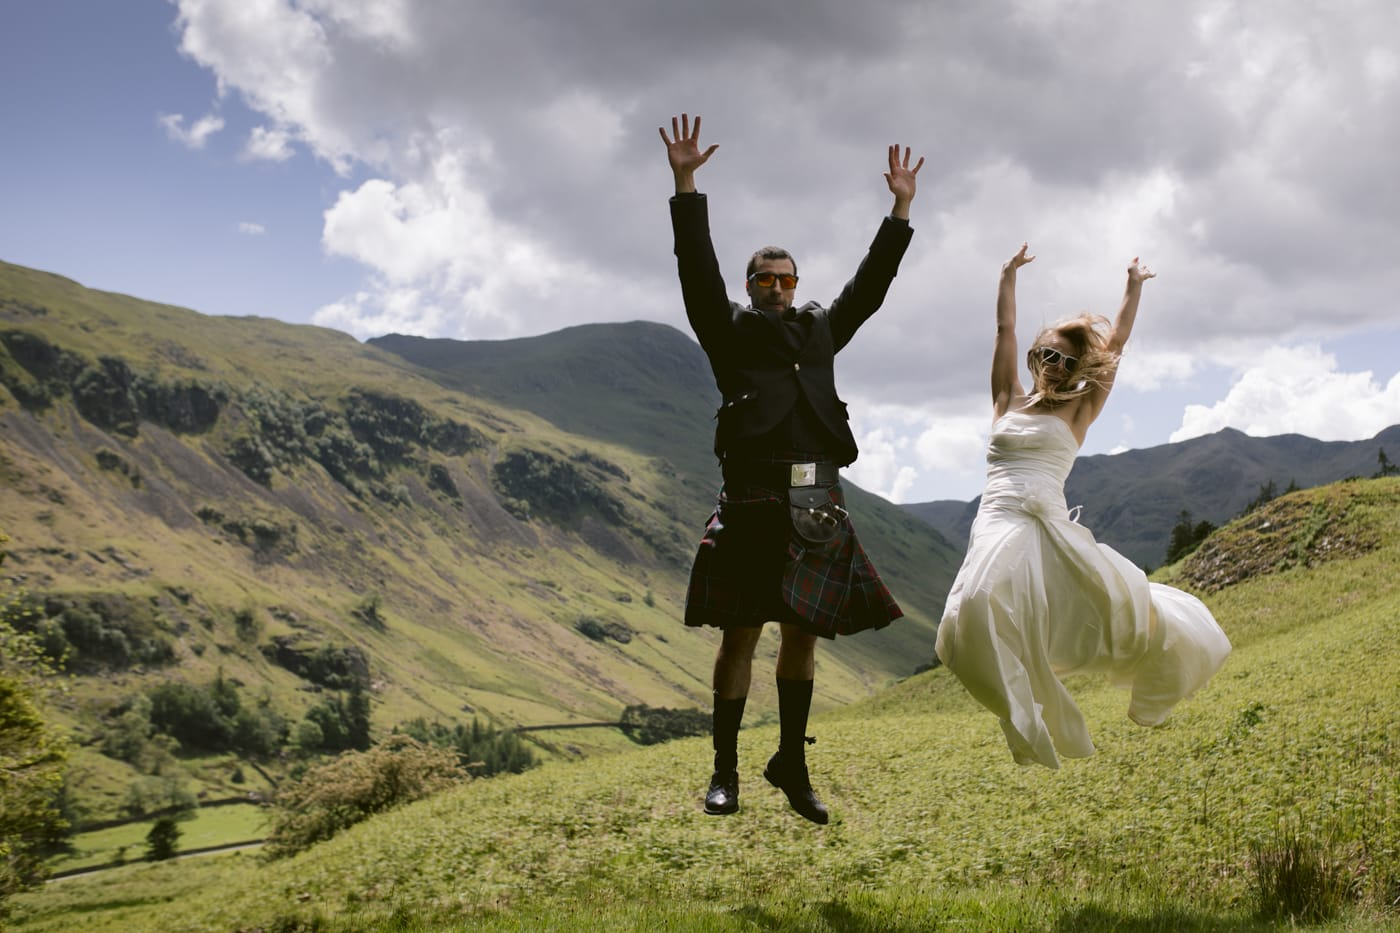 Bride and Groom Jumping in Celebration Portrait Photography Session